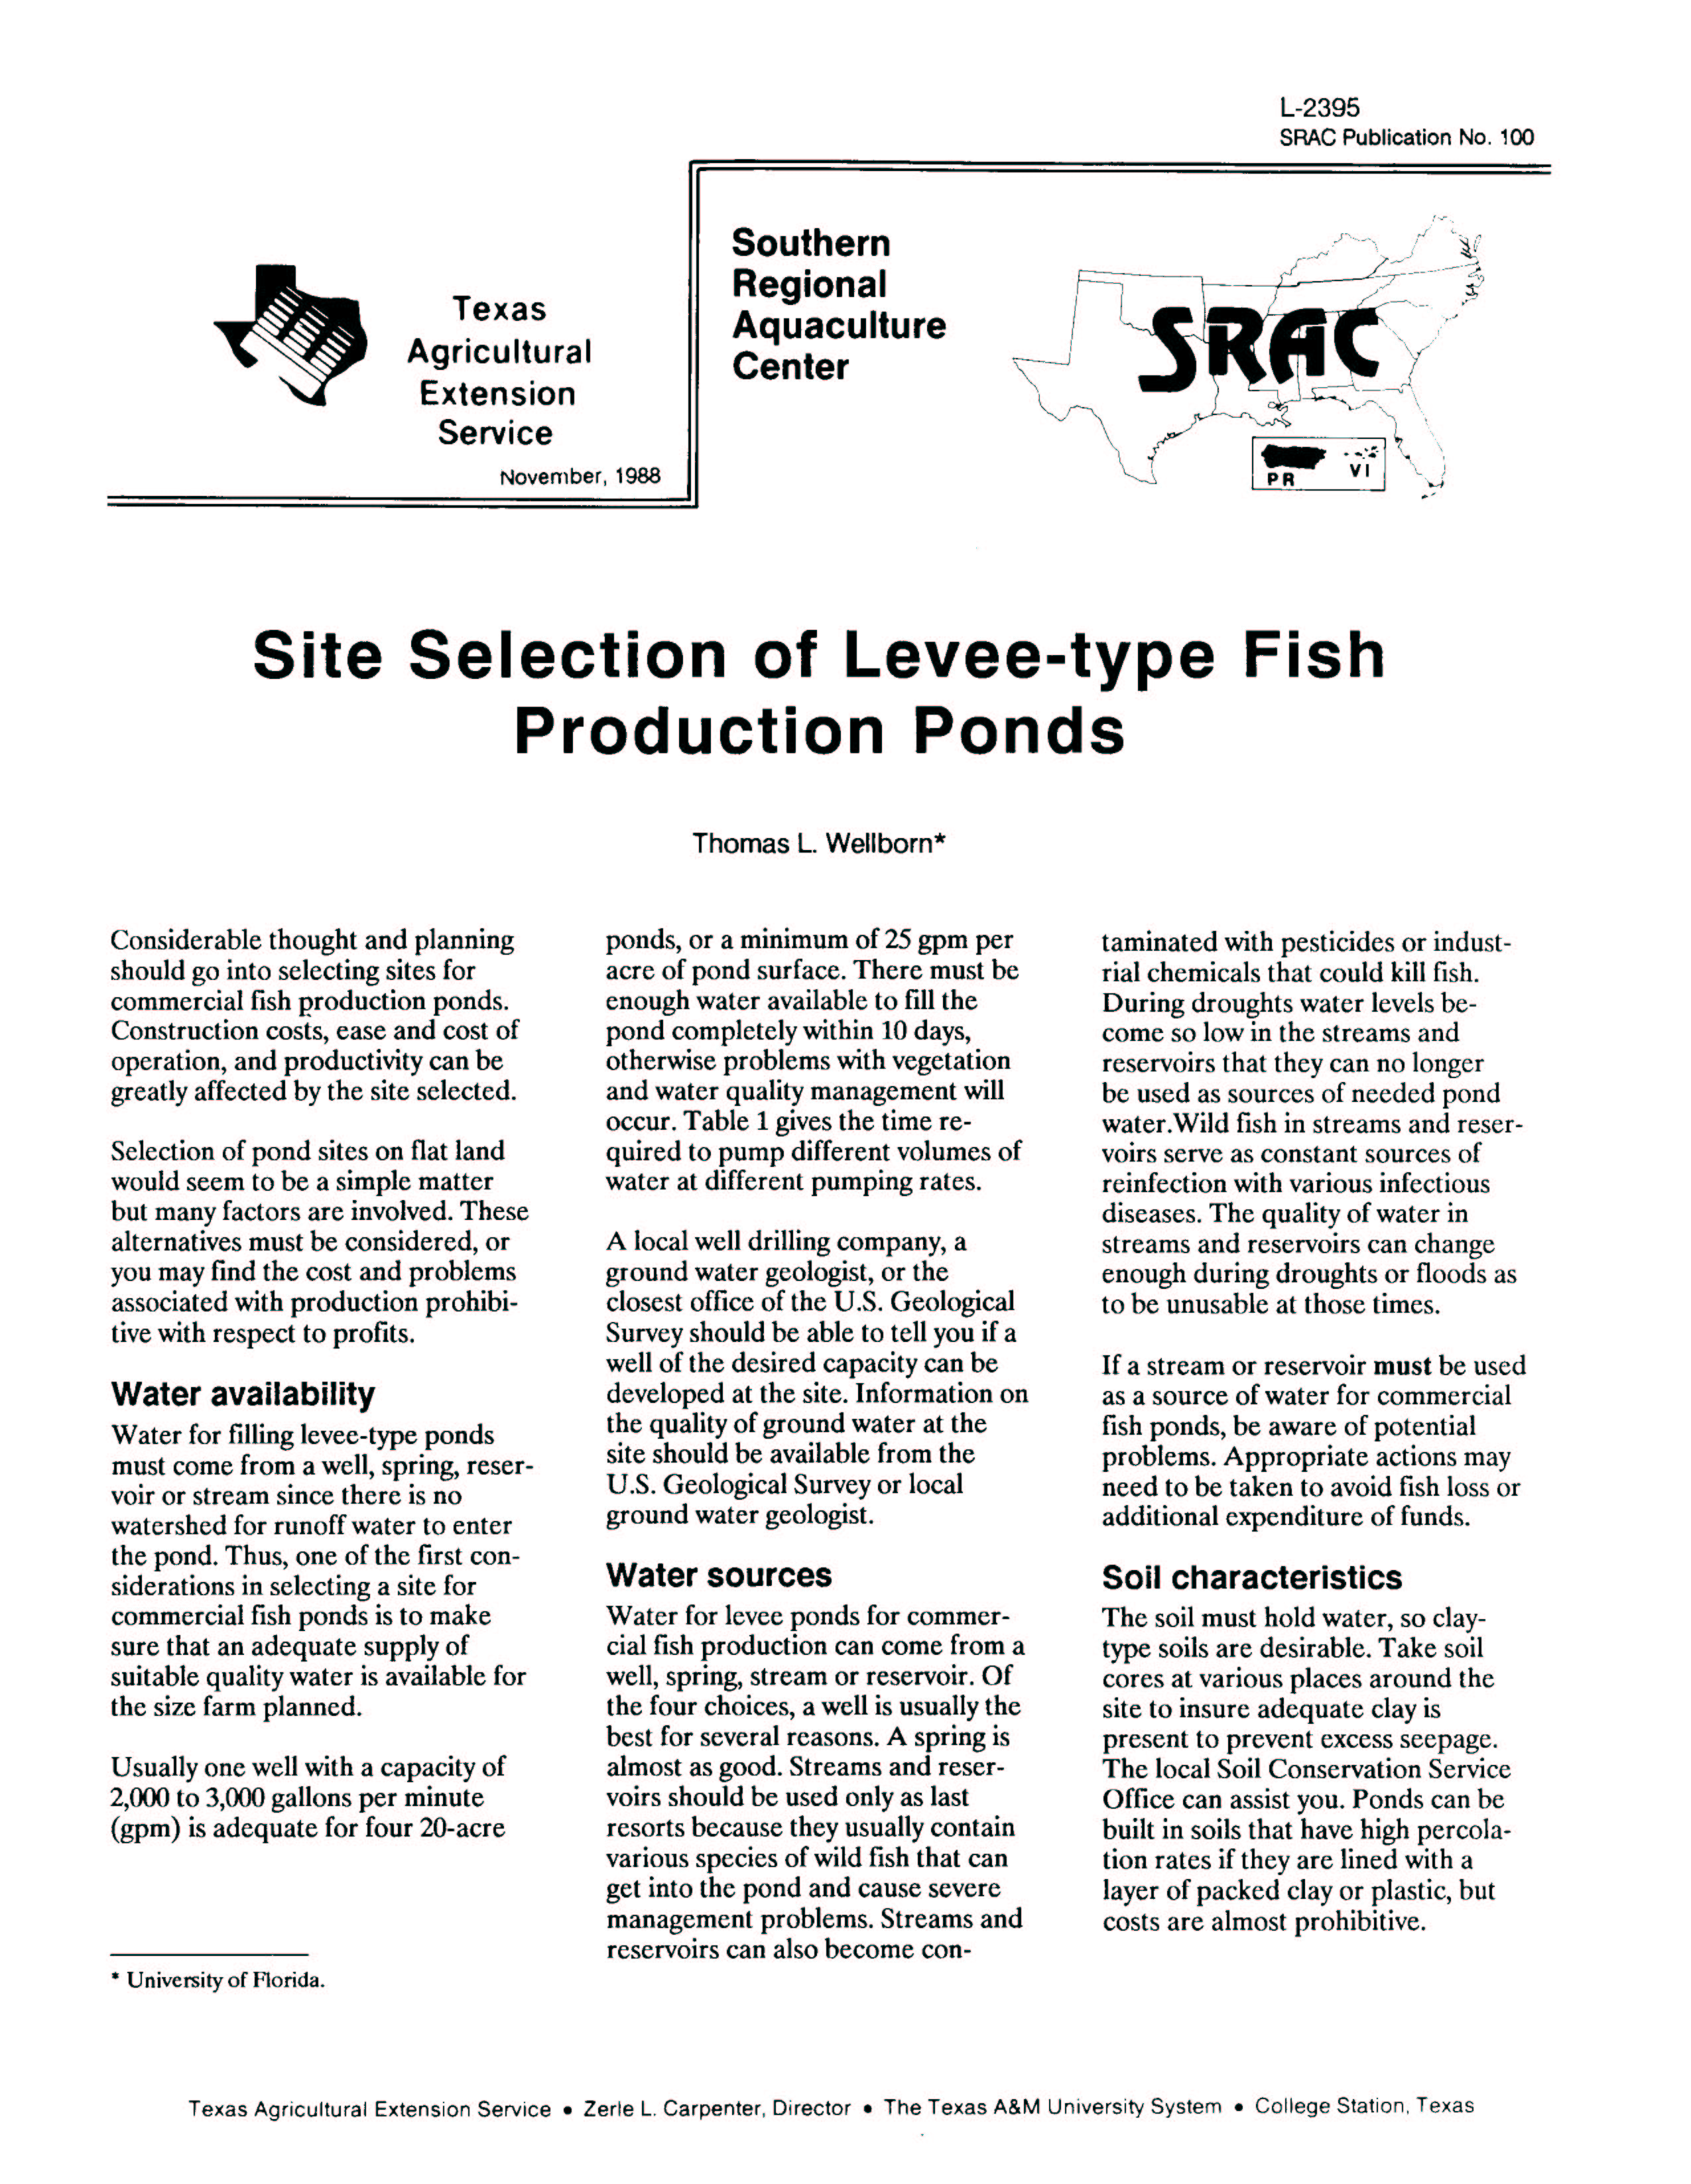 Site Selection of Levee-Type Fish Production Ponds